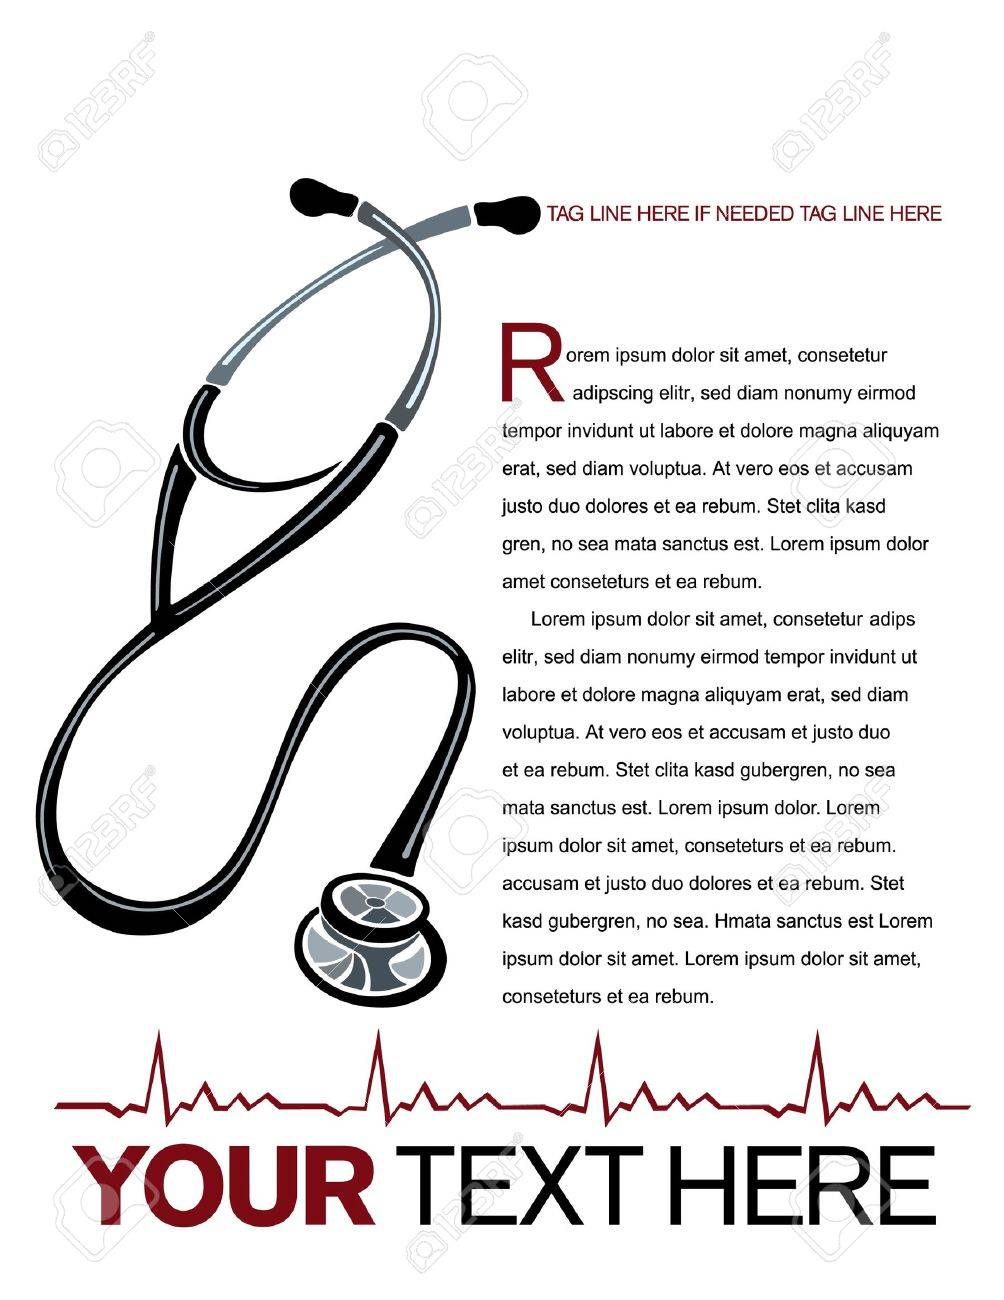 Vector healthcare page layout with stethoscope and heart graph illustrations. Stock Vector - 9755958